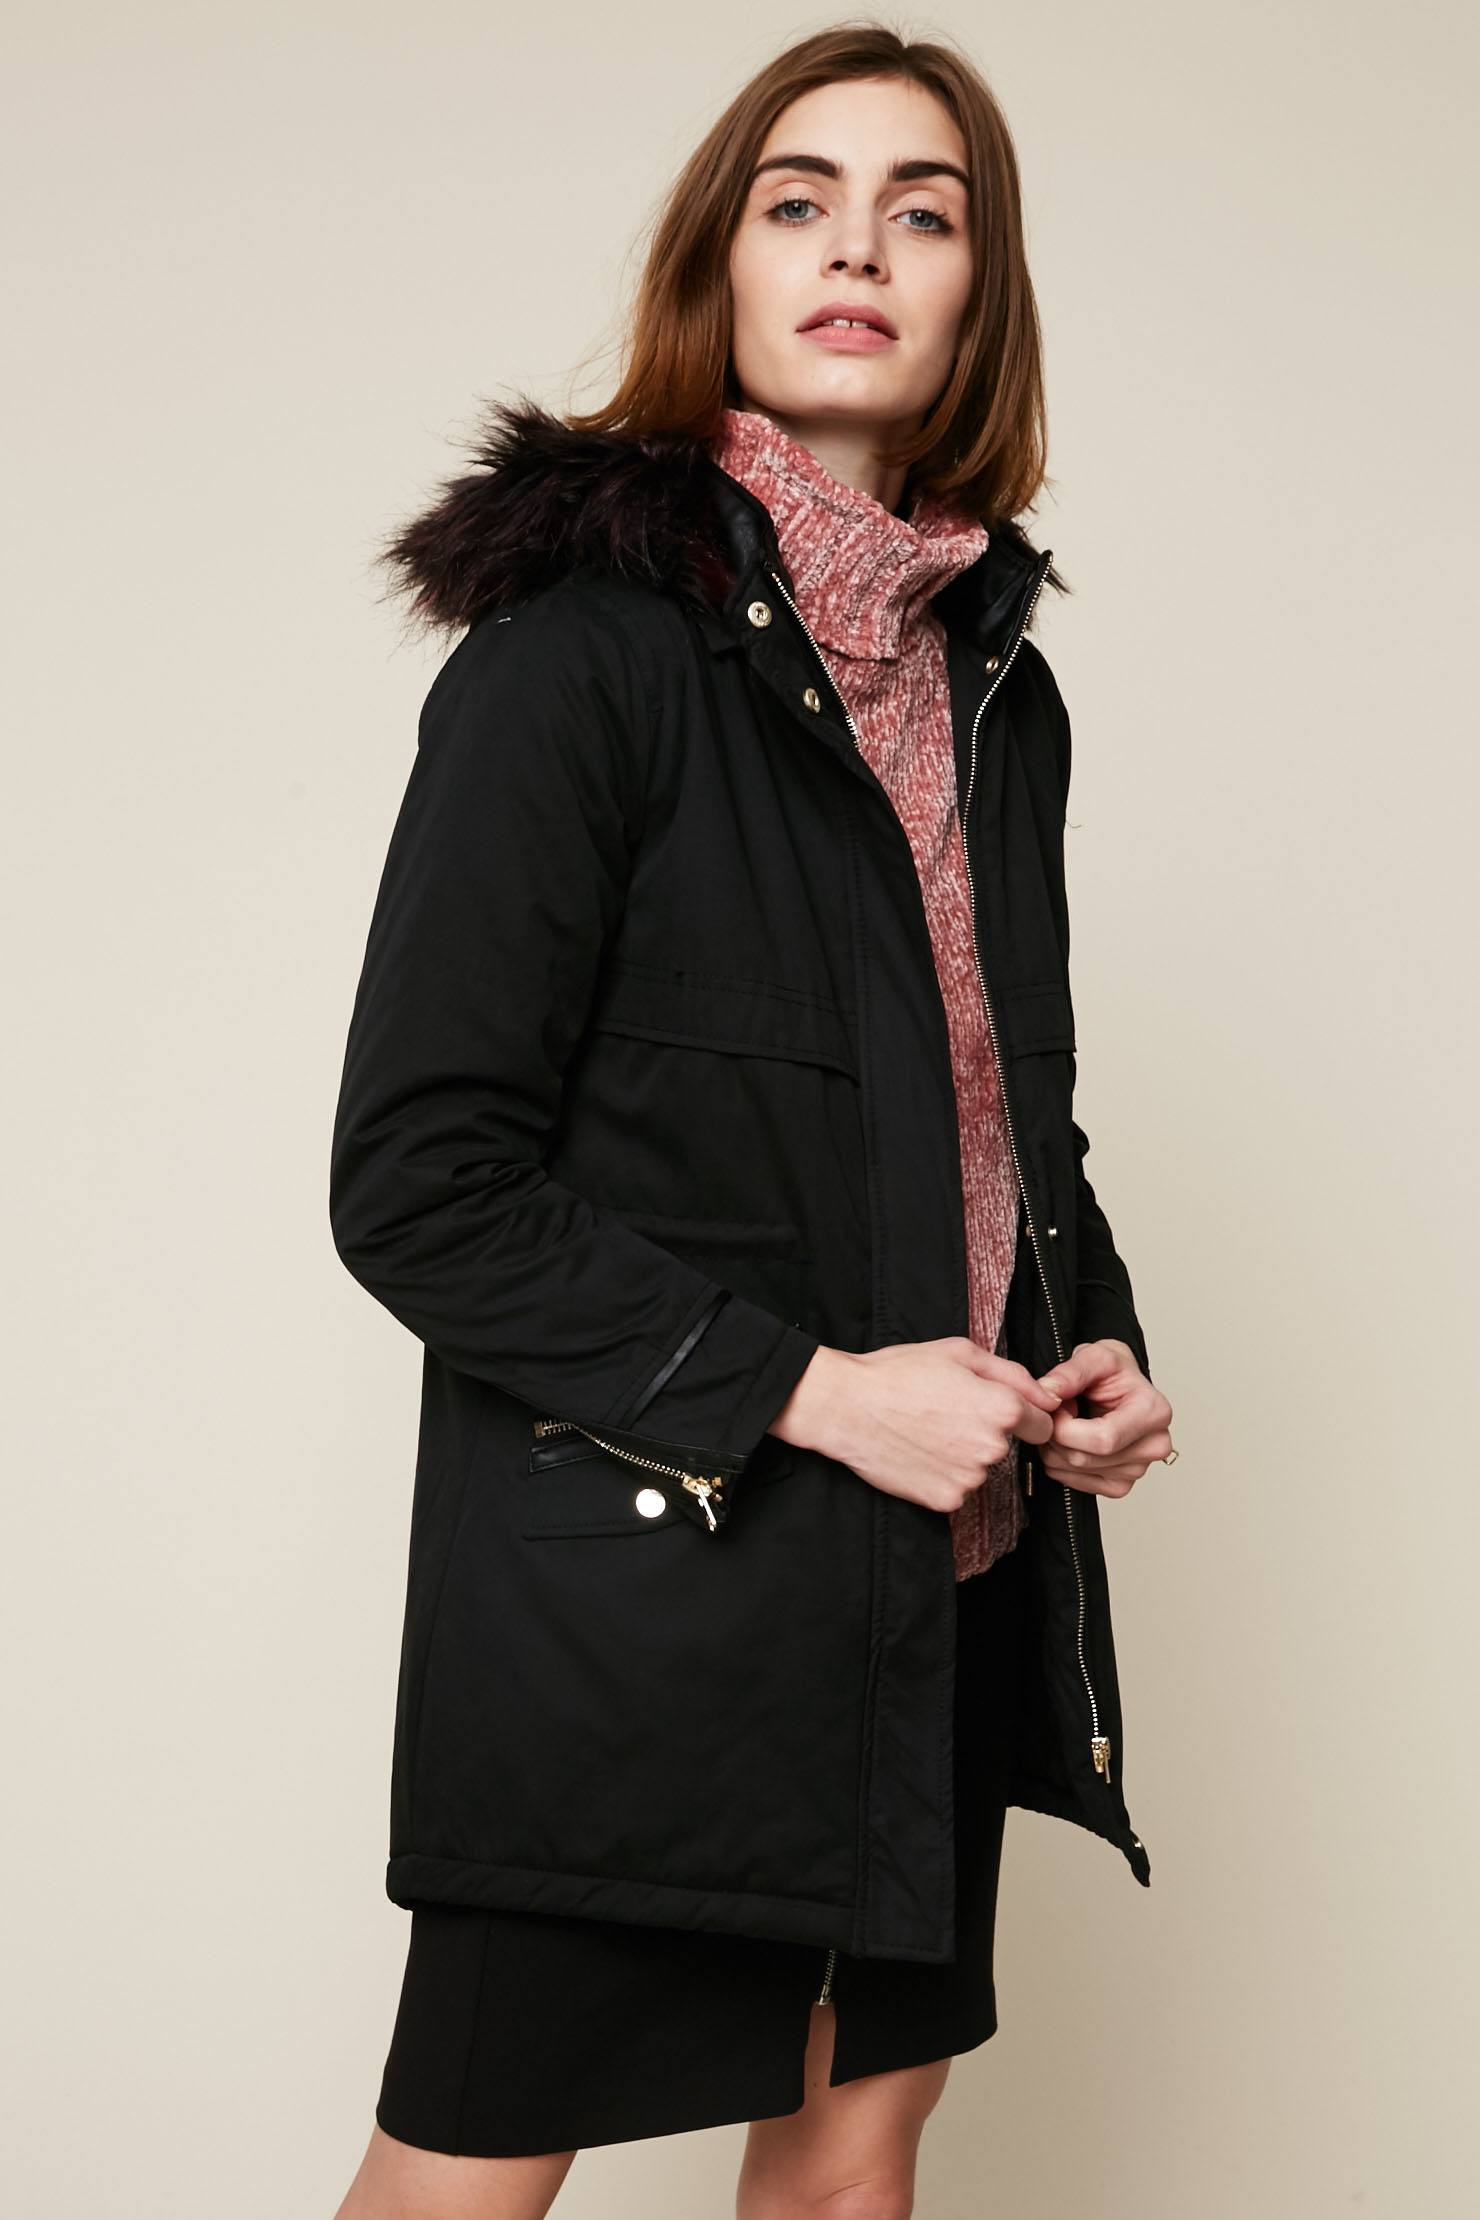 8685526e1b97a Only Manteau long noir à capuche en fourrure synthétique - Manteau ...